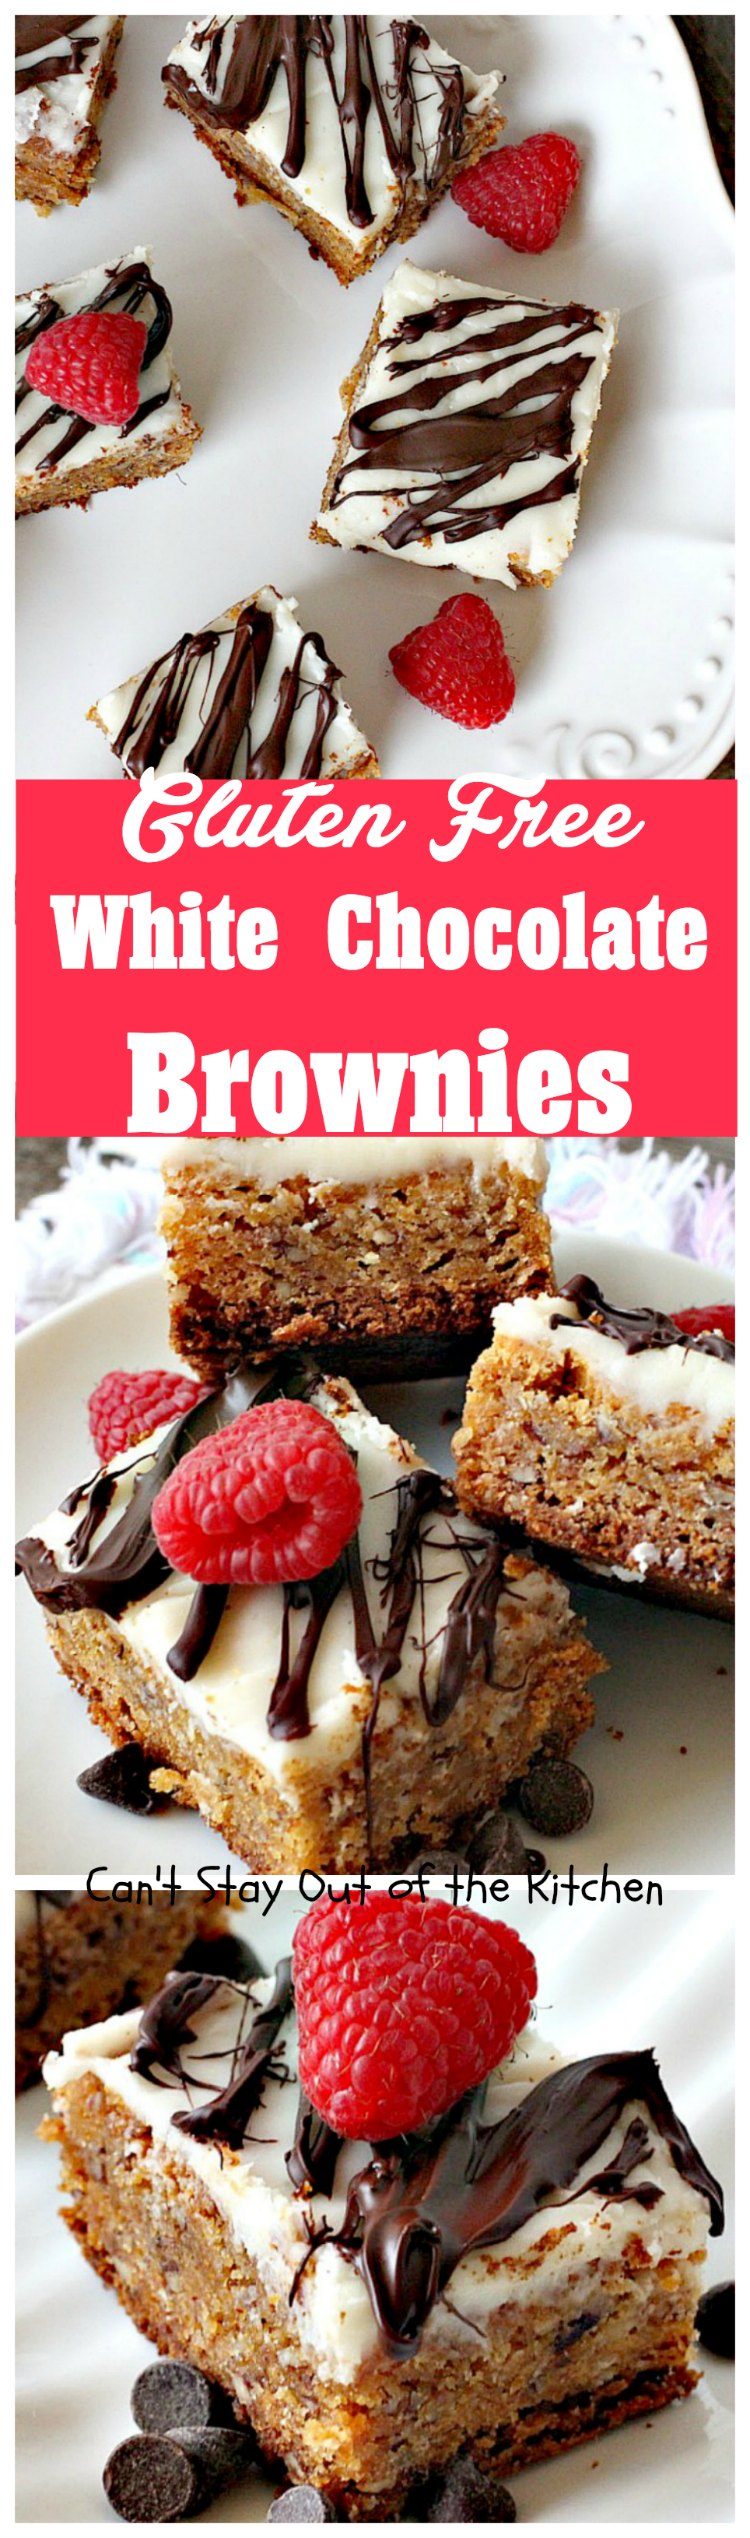 Gluten Free White Chocolate Brownies - Can't Stay Out of the Kitchen